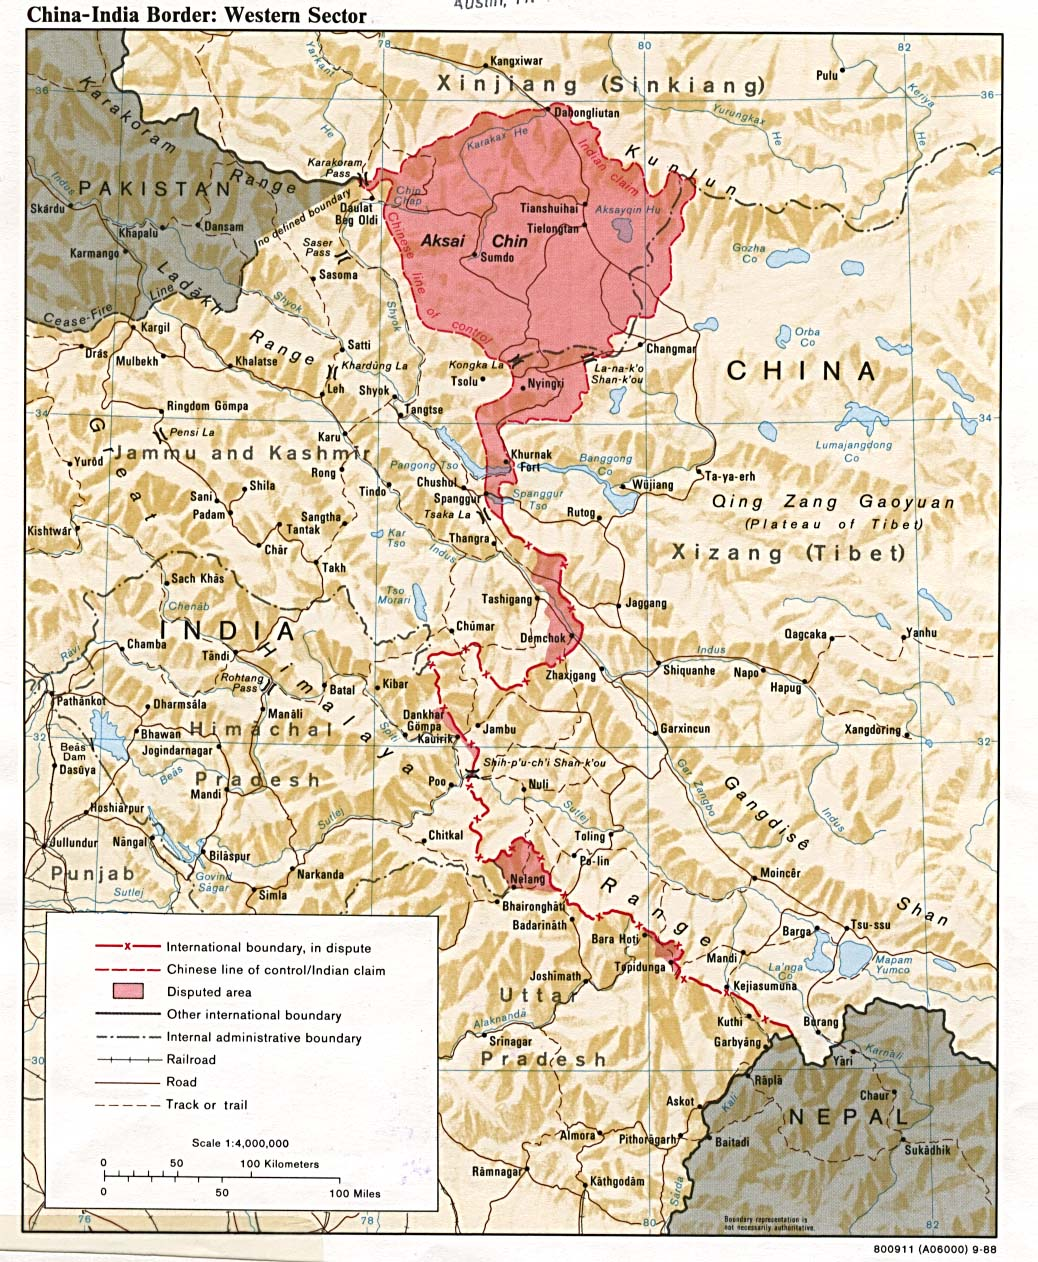 'India-China Border: Western Sector' 